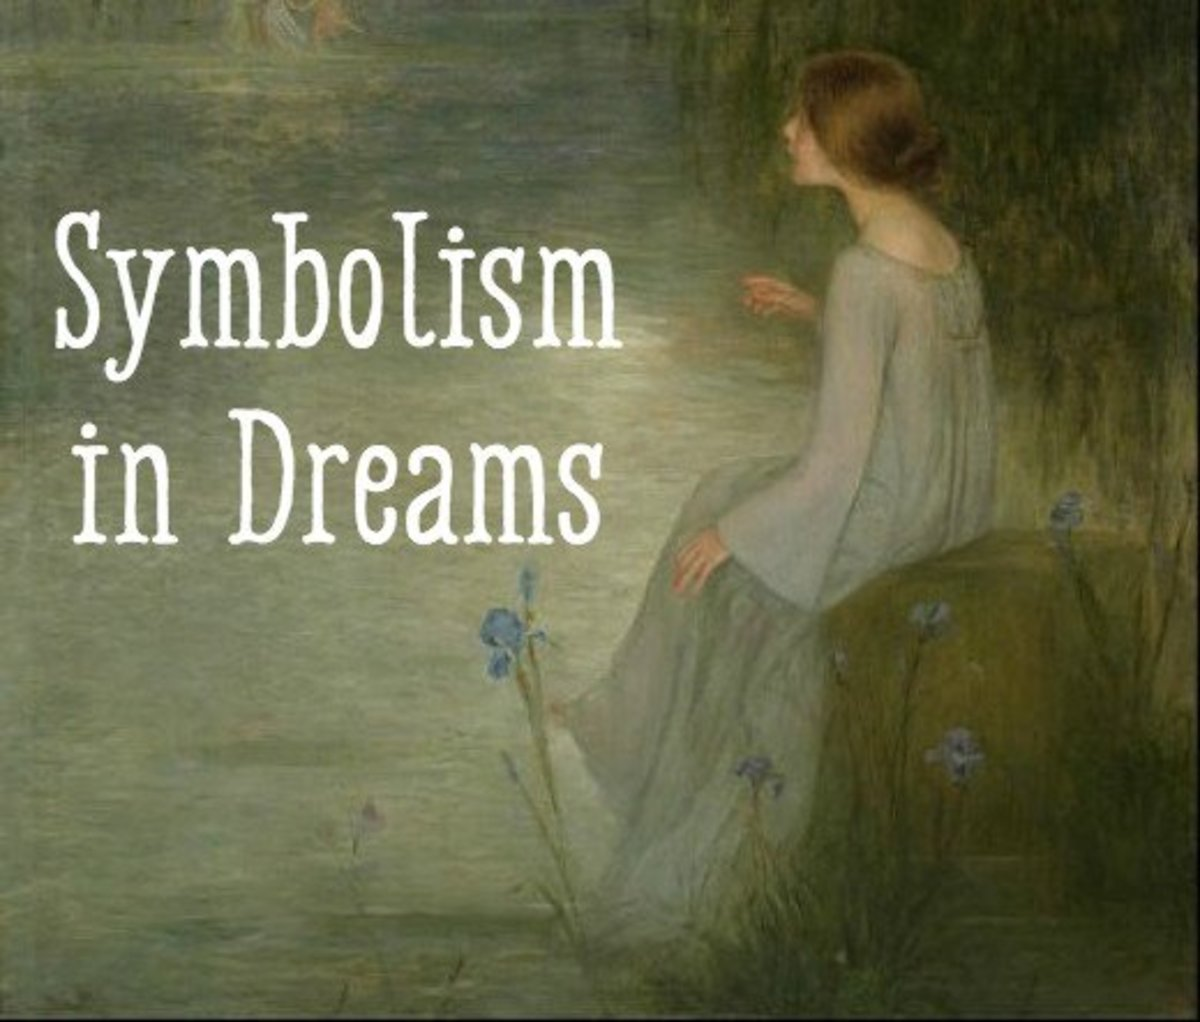 What do symbols in dreams actually mean?